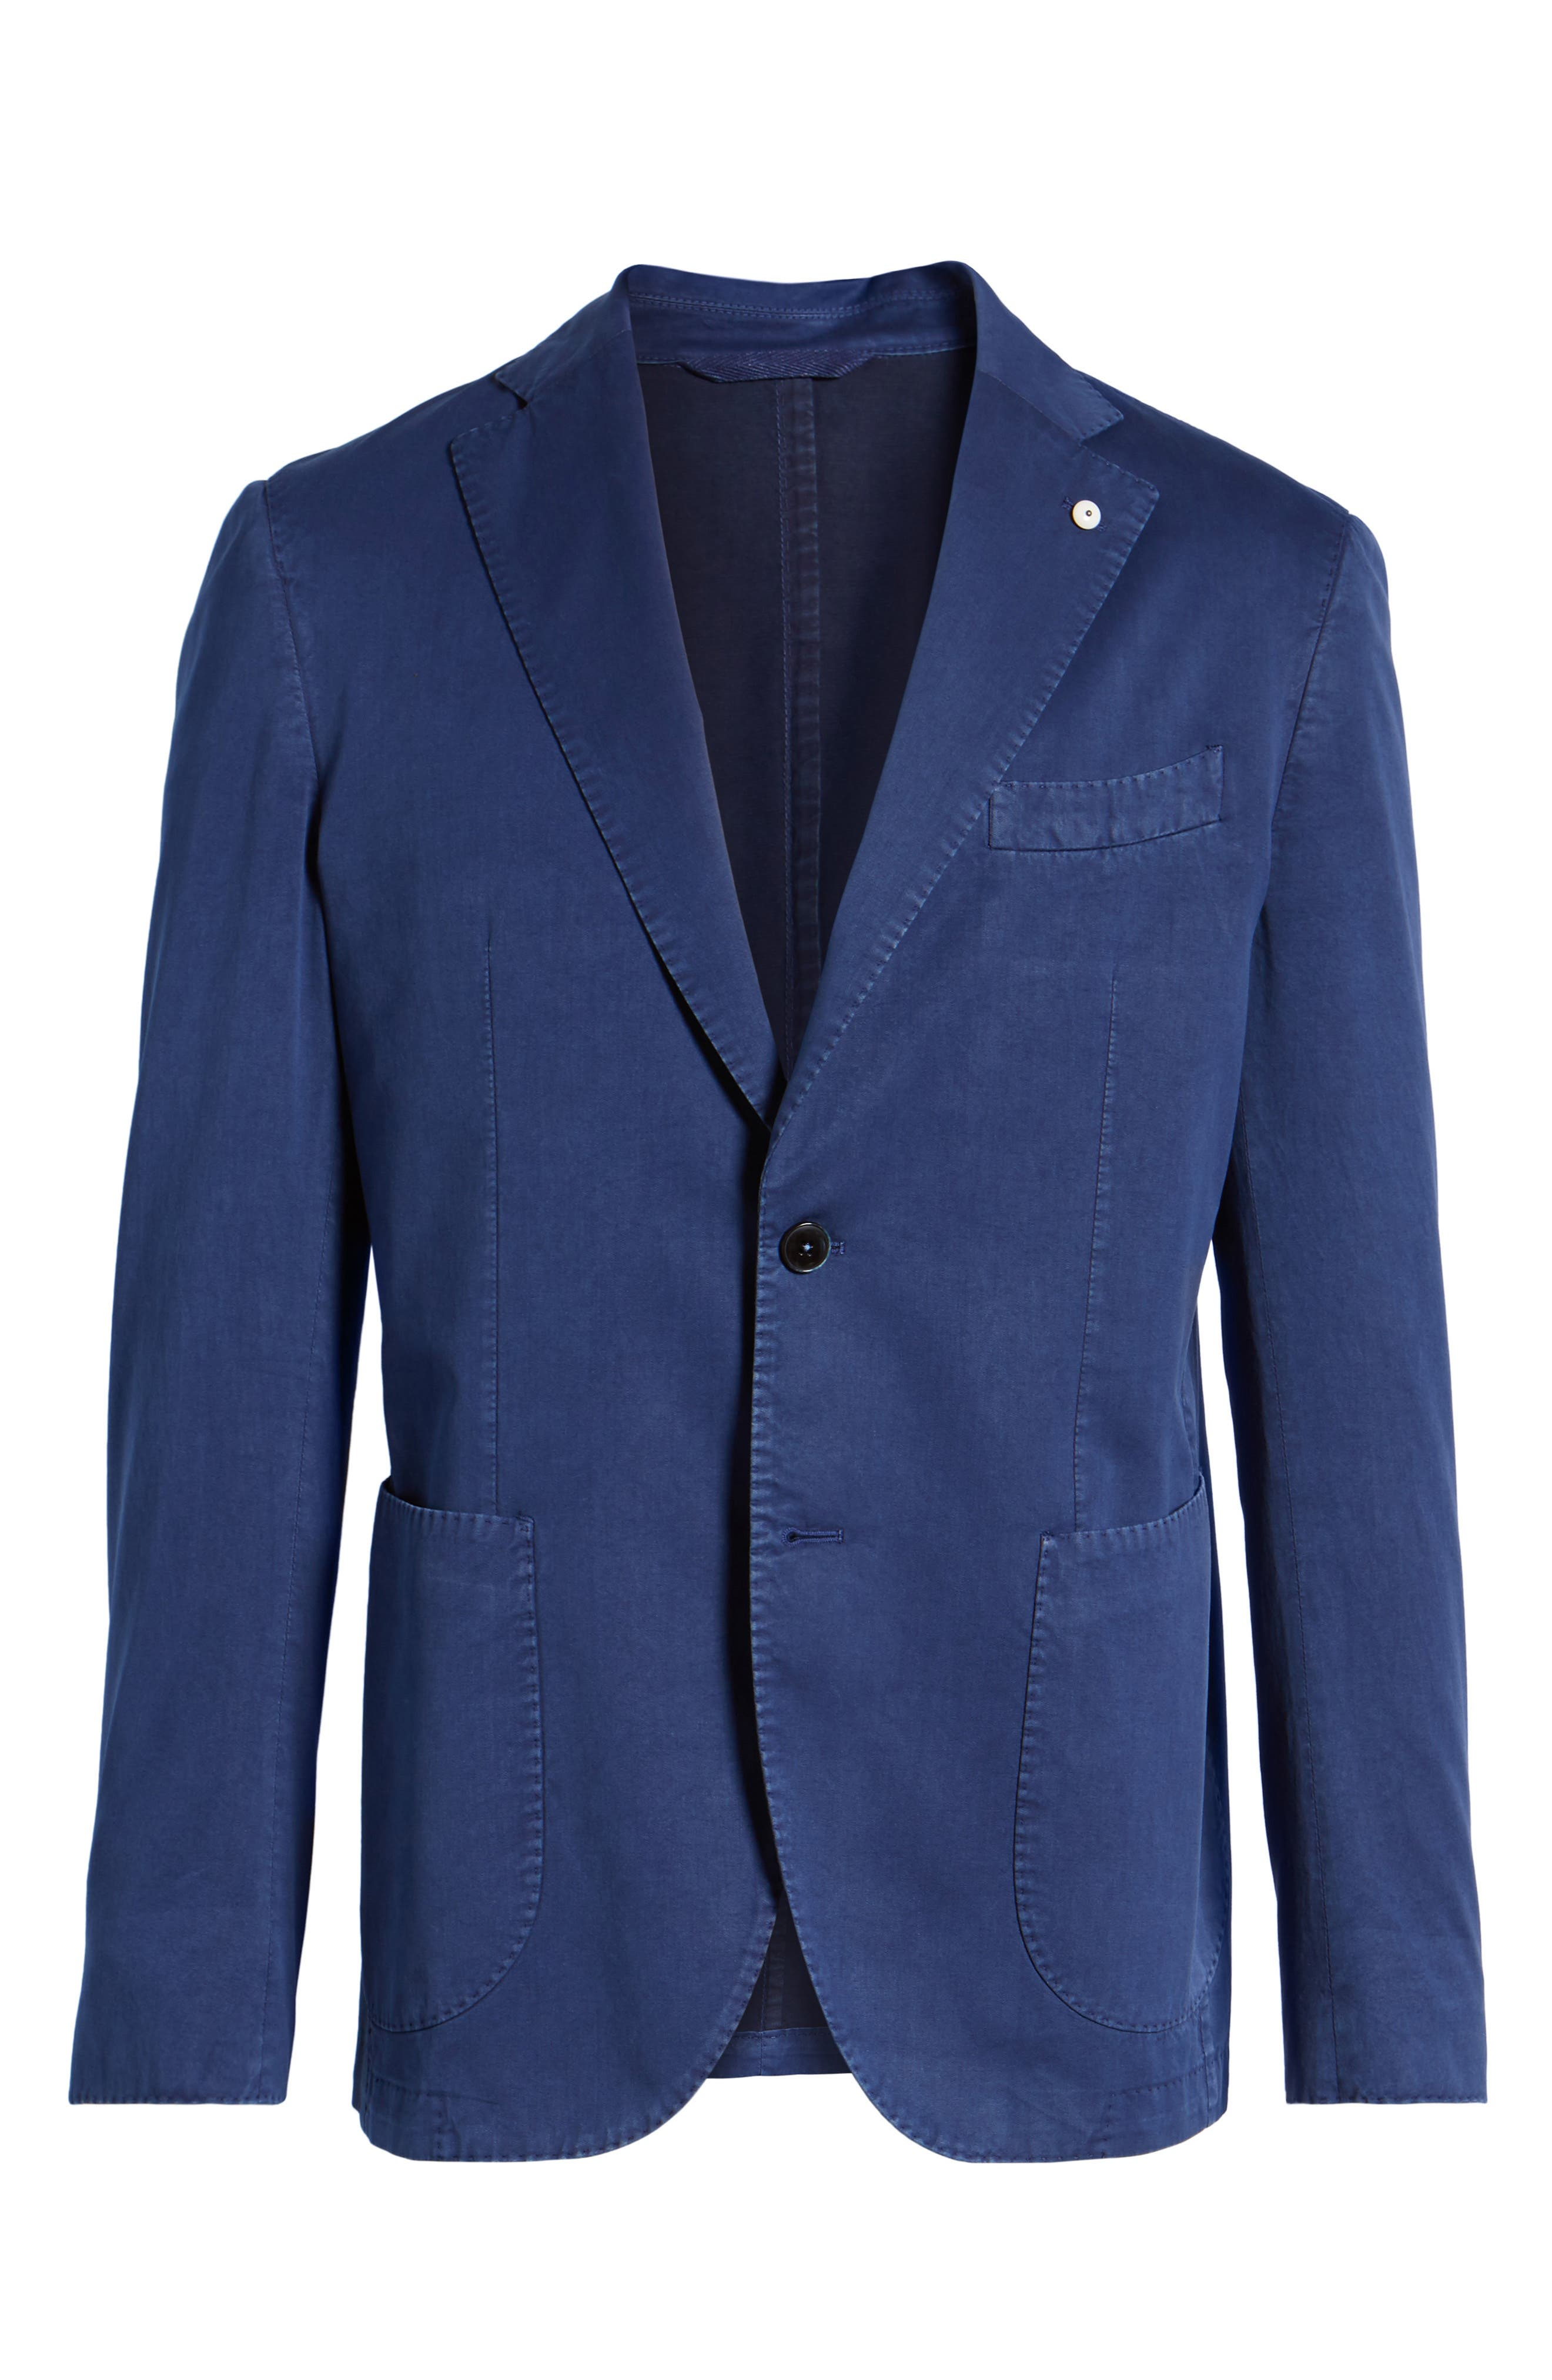 Classic Fit Cotton & Silk Blazer,                             Alternate thumbnail 6, color,                             Navy